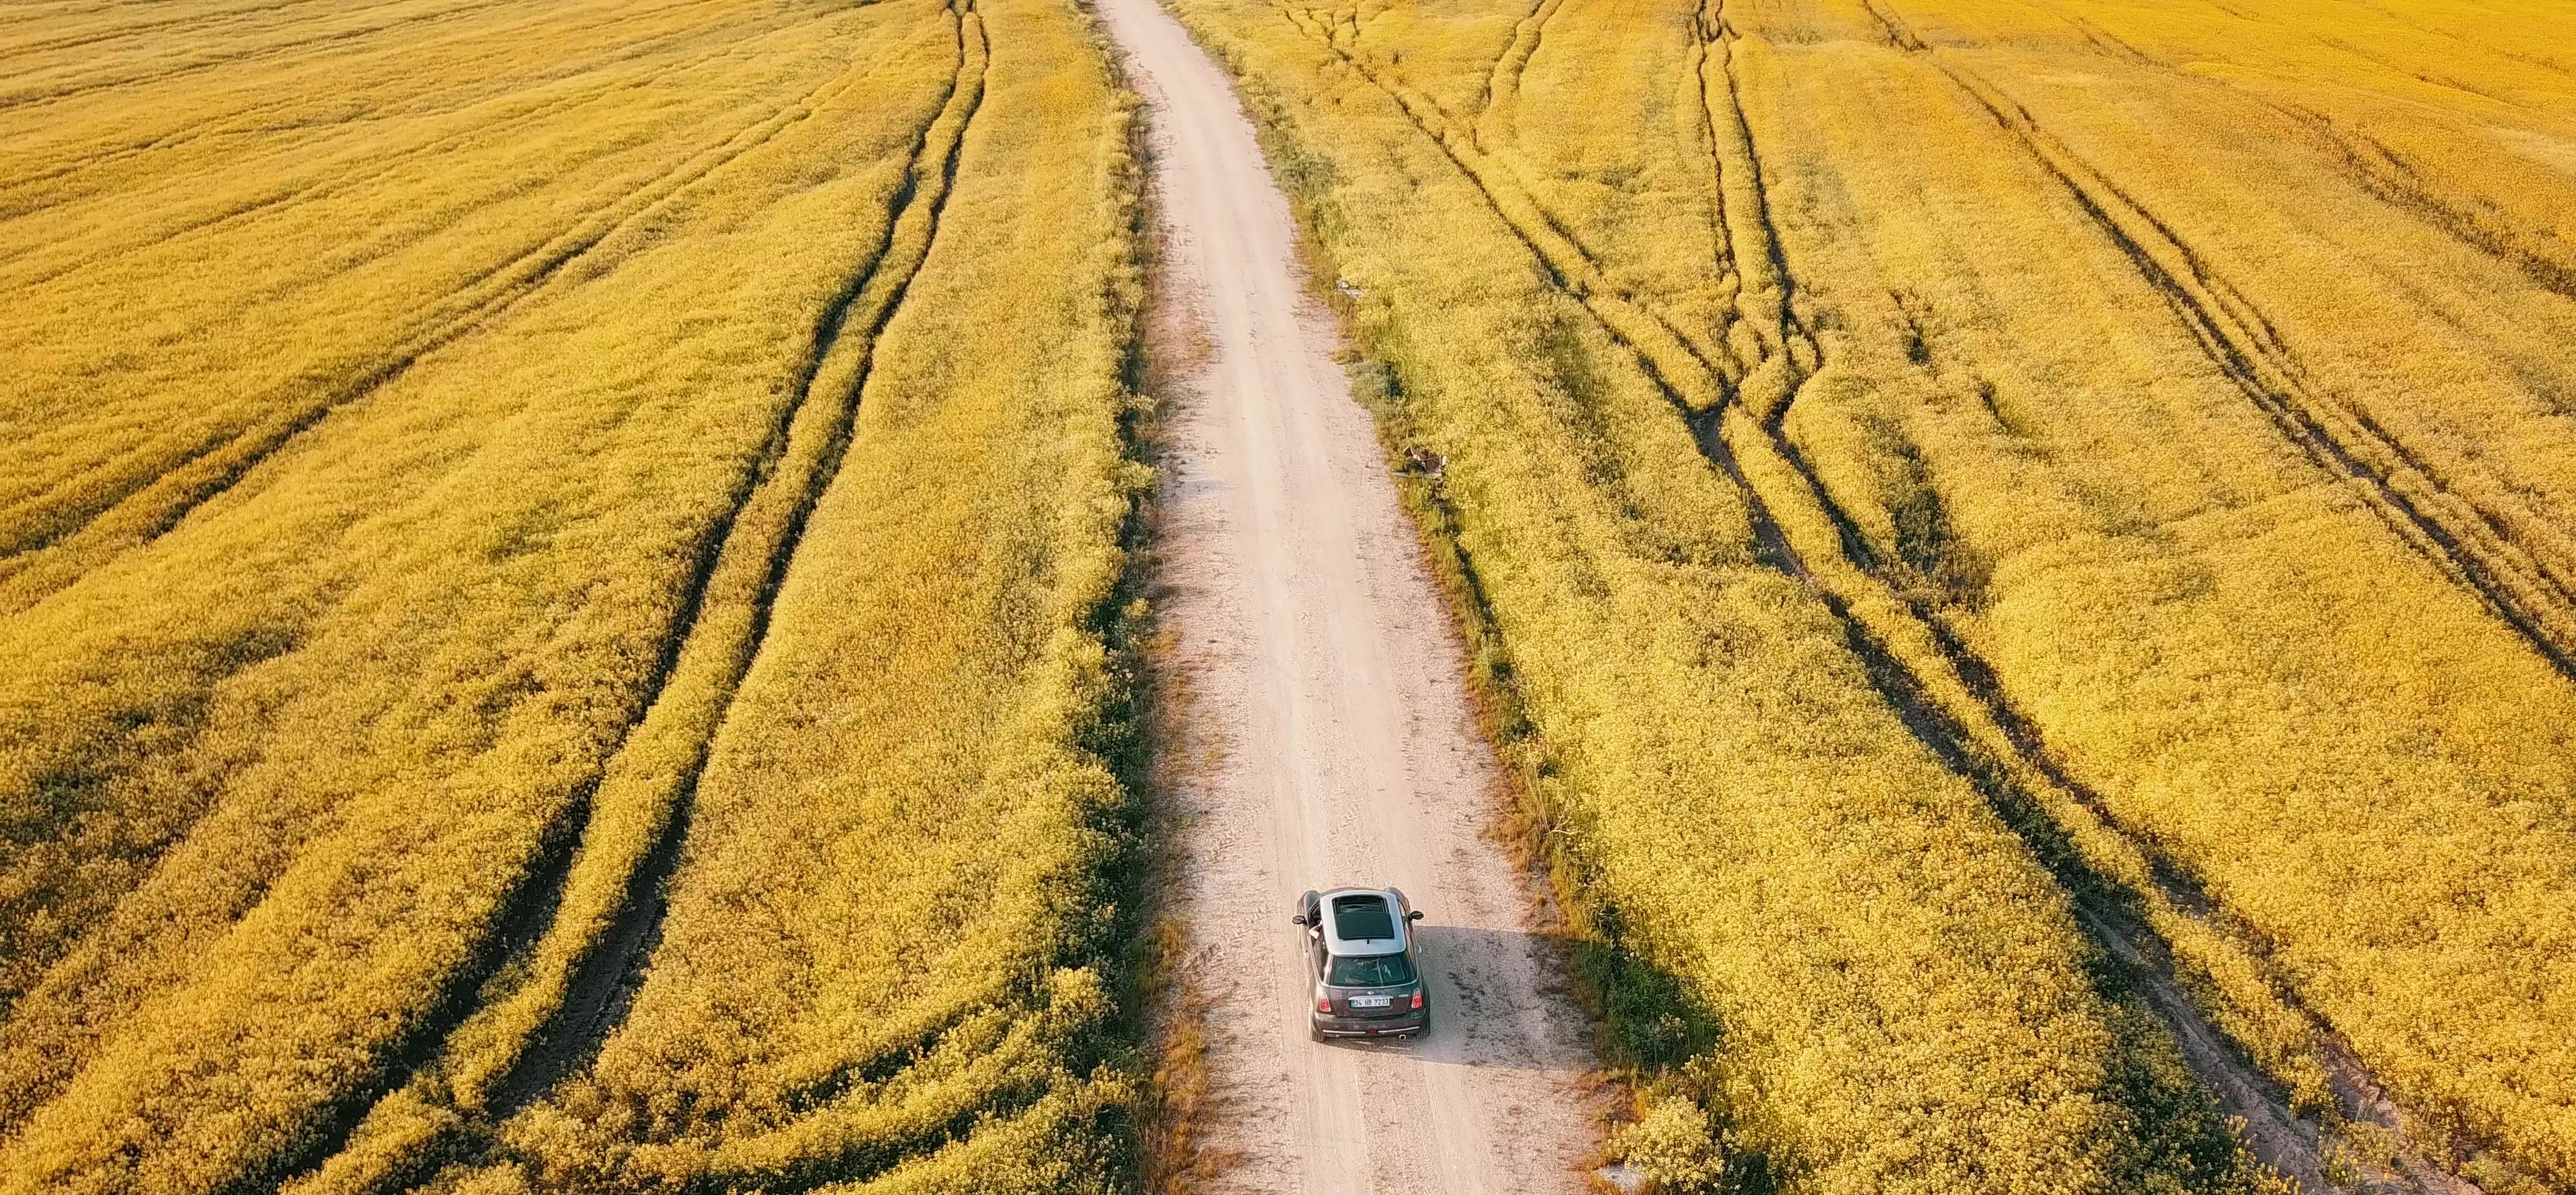 Advantages of renting a vehicle to travel